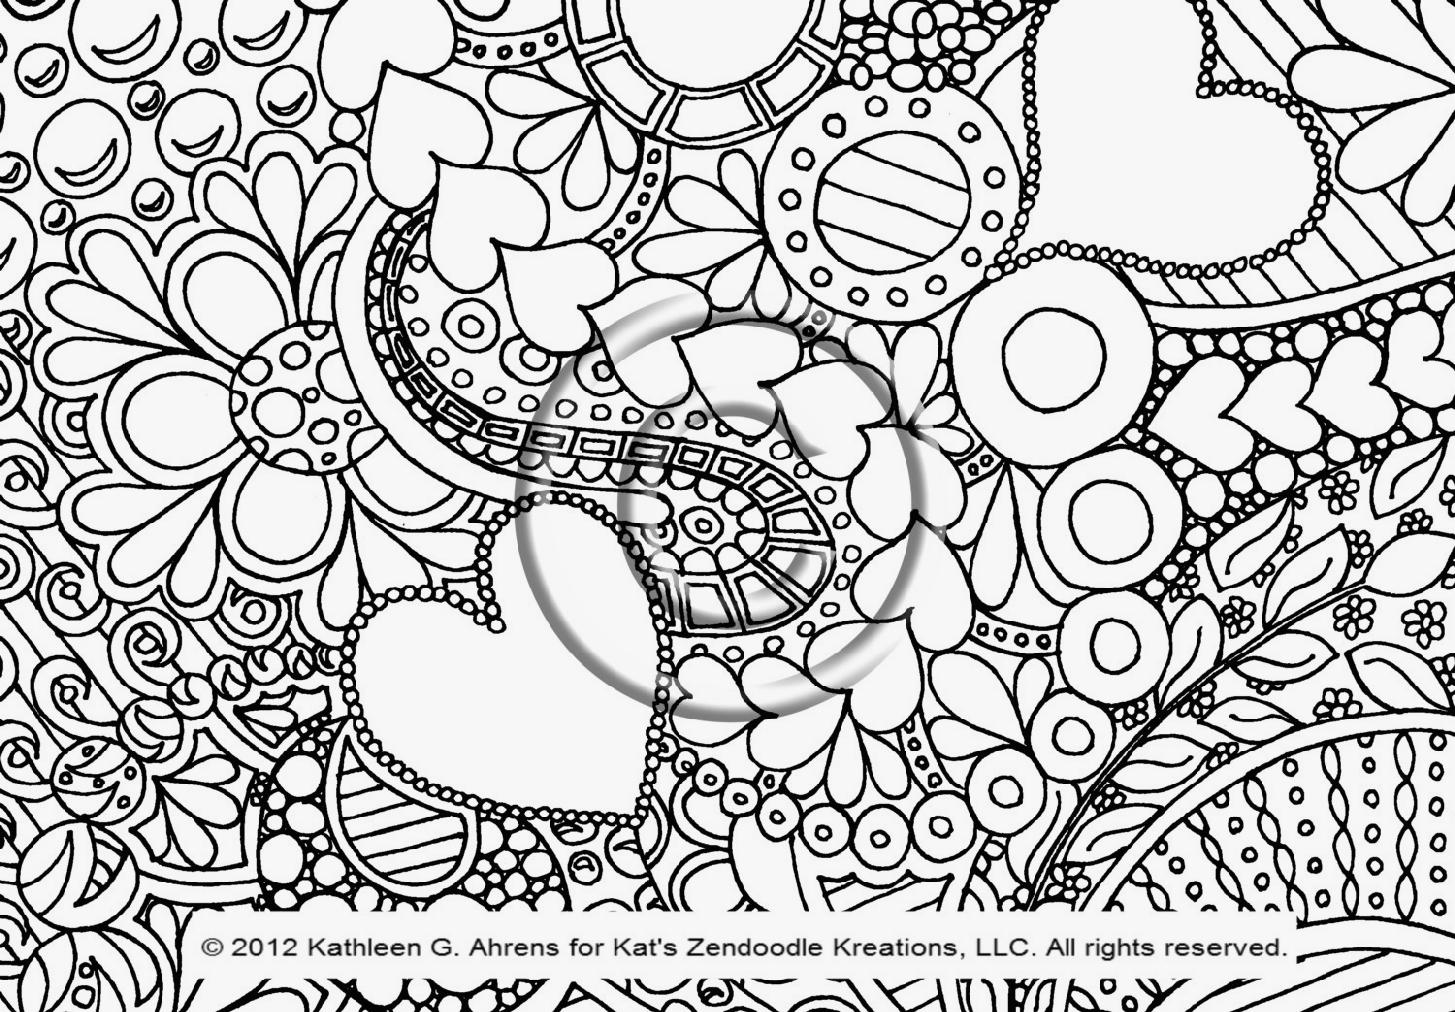 Best Website For Free Coloring Pages : Doodle coloring pages to download and print for free